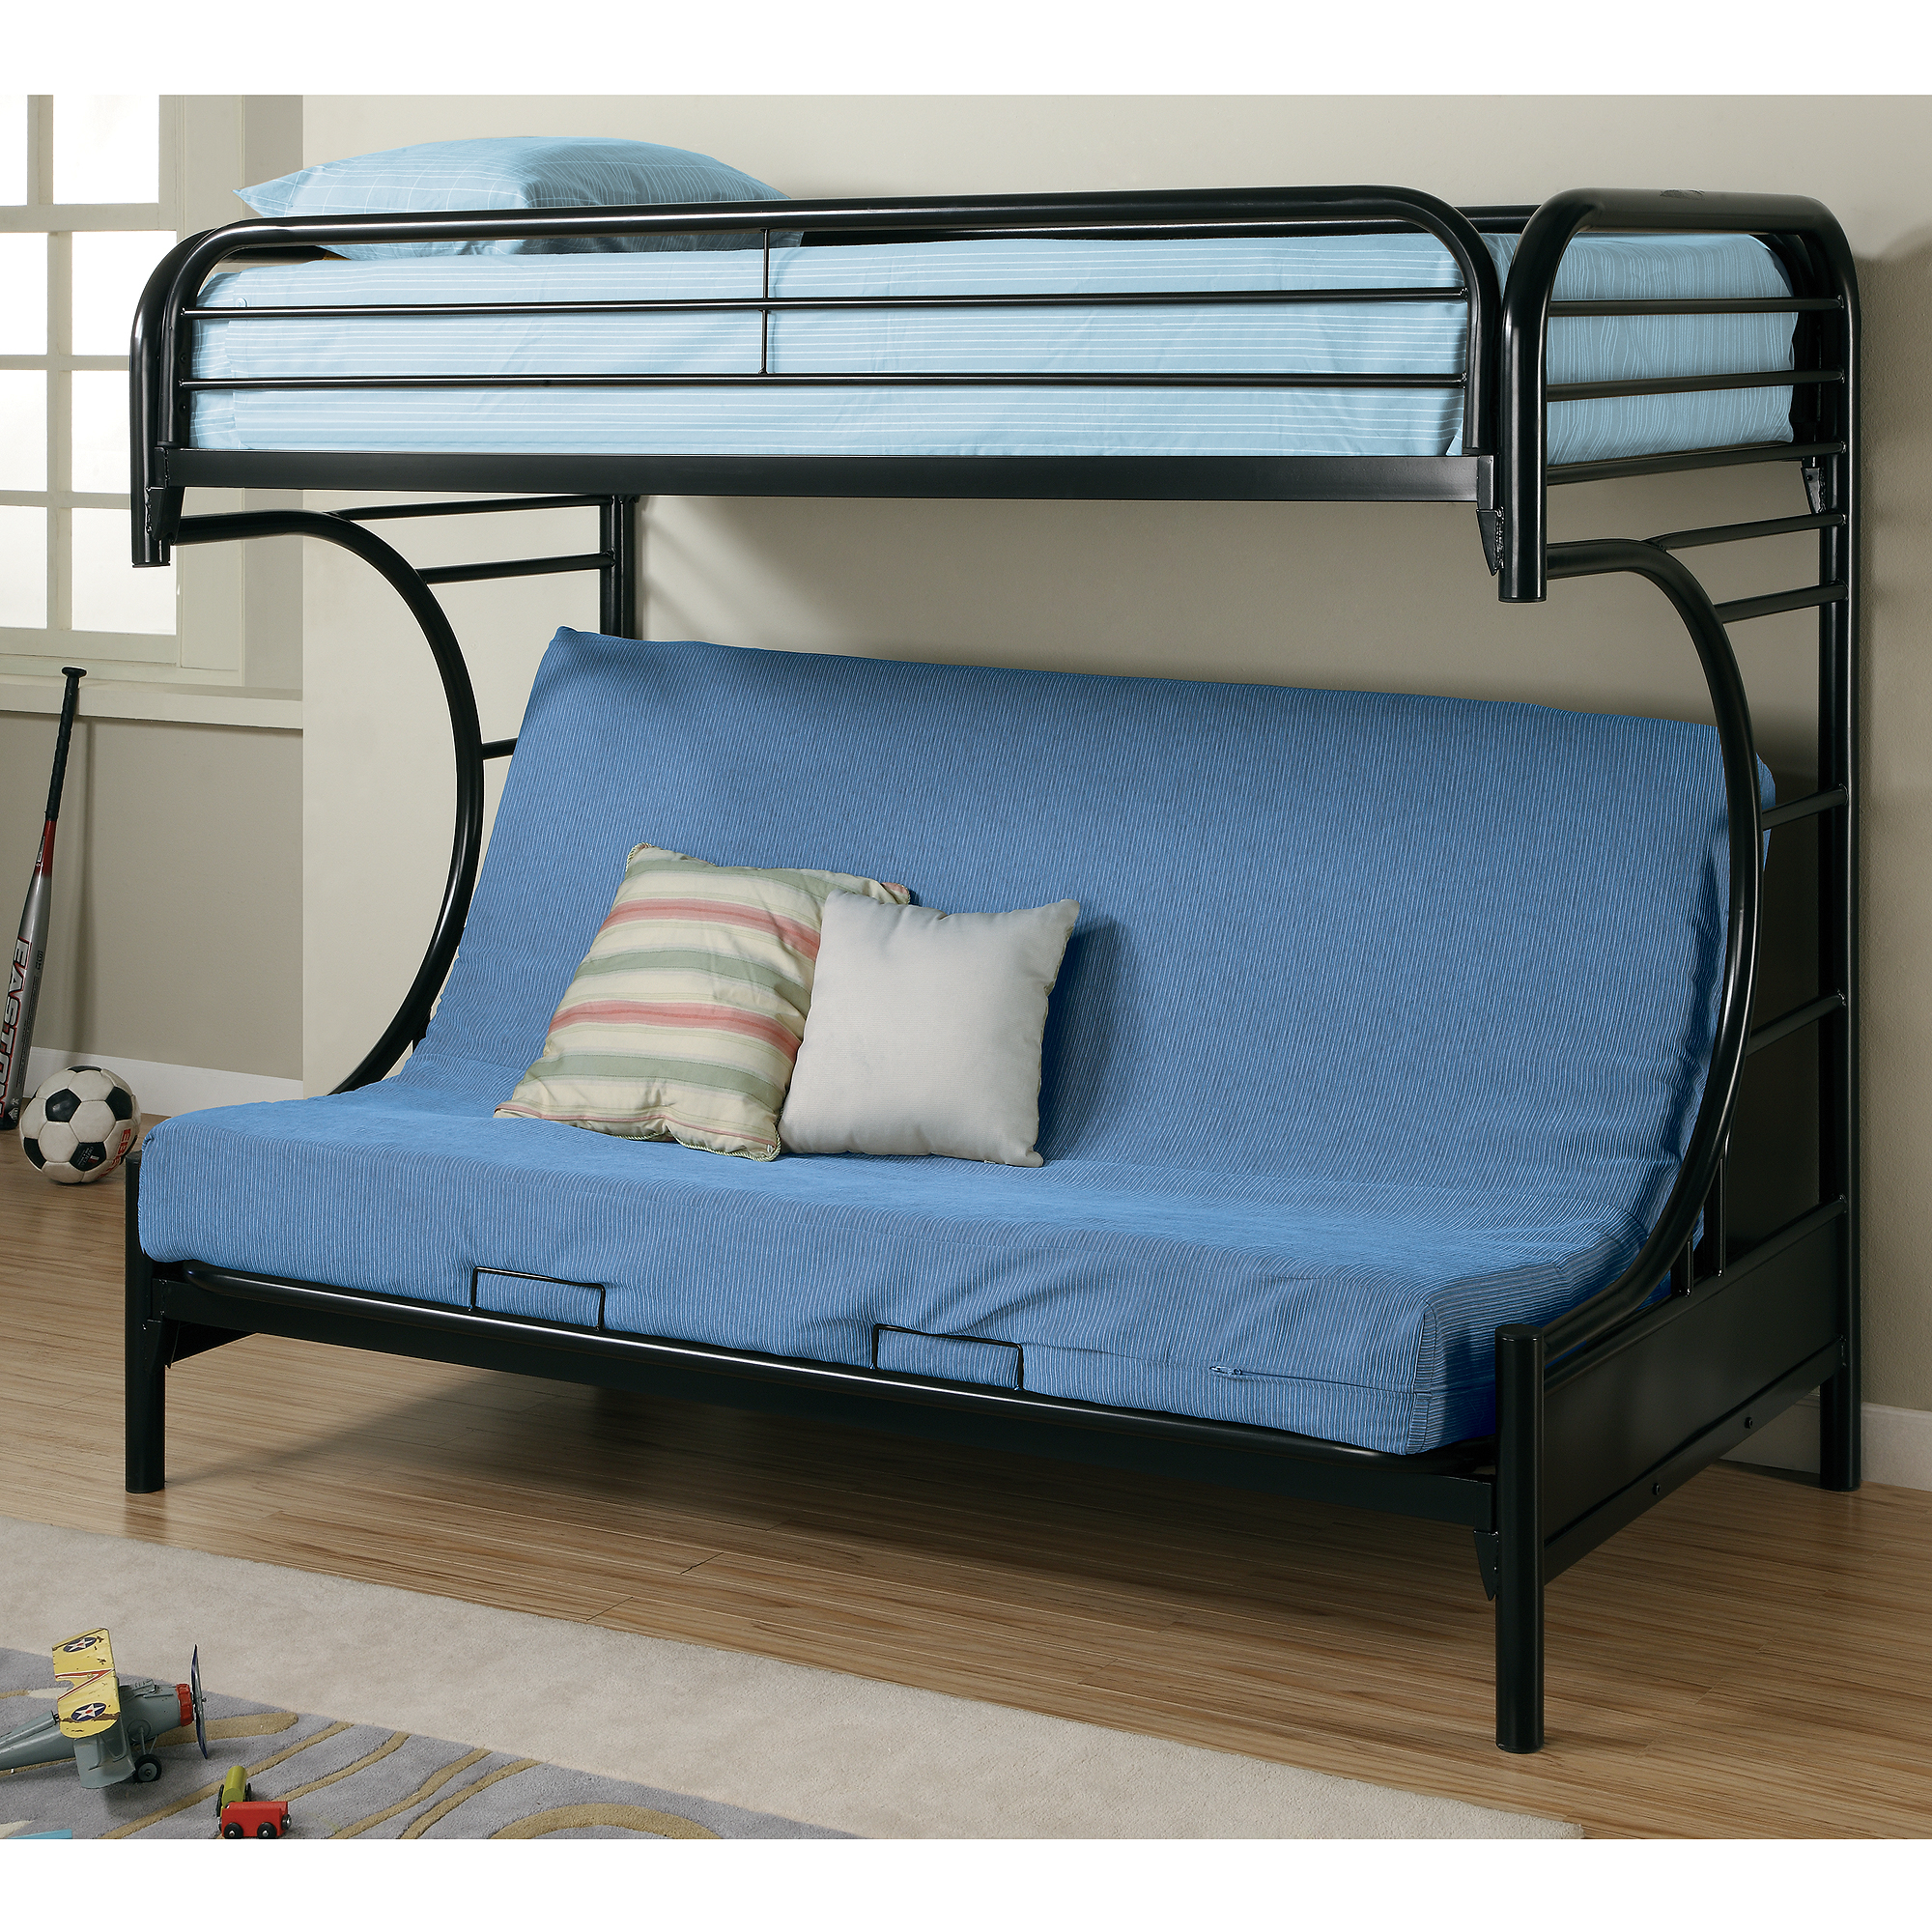 Coaster C Style Twin Over Full Futon Metal Bunk Bed, Black   Walmart.com